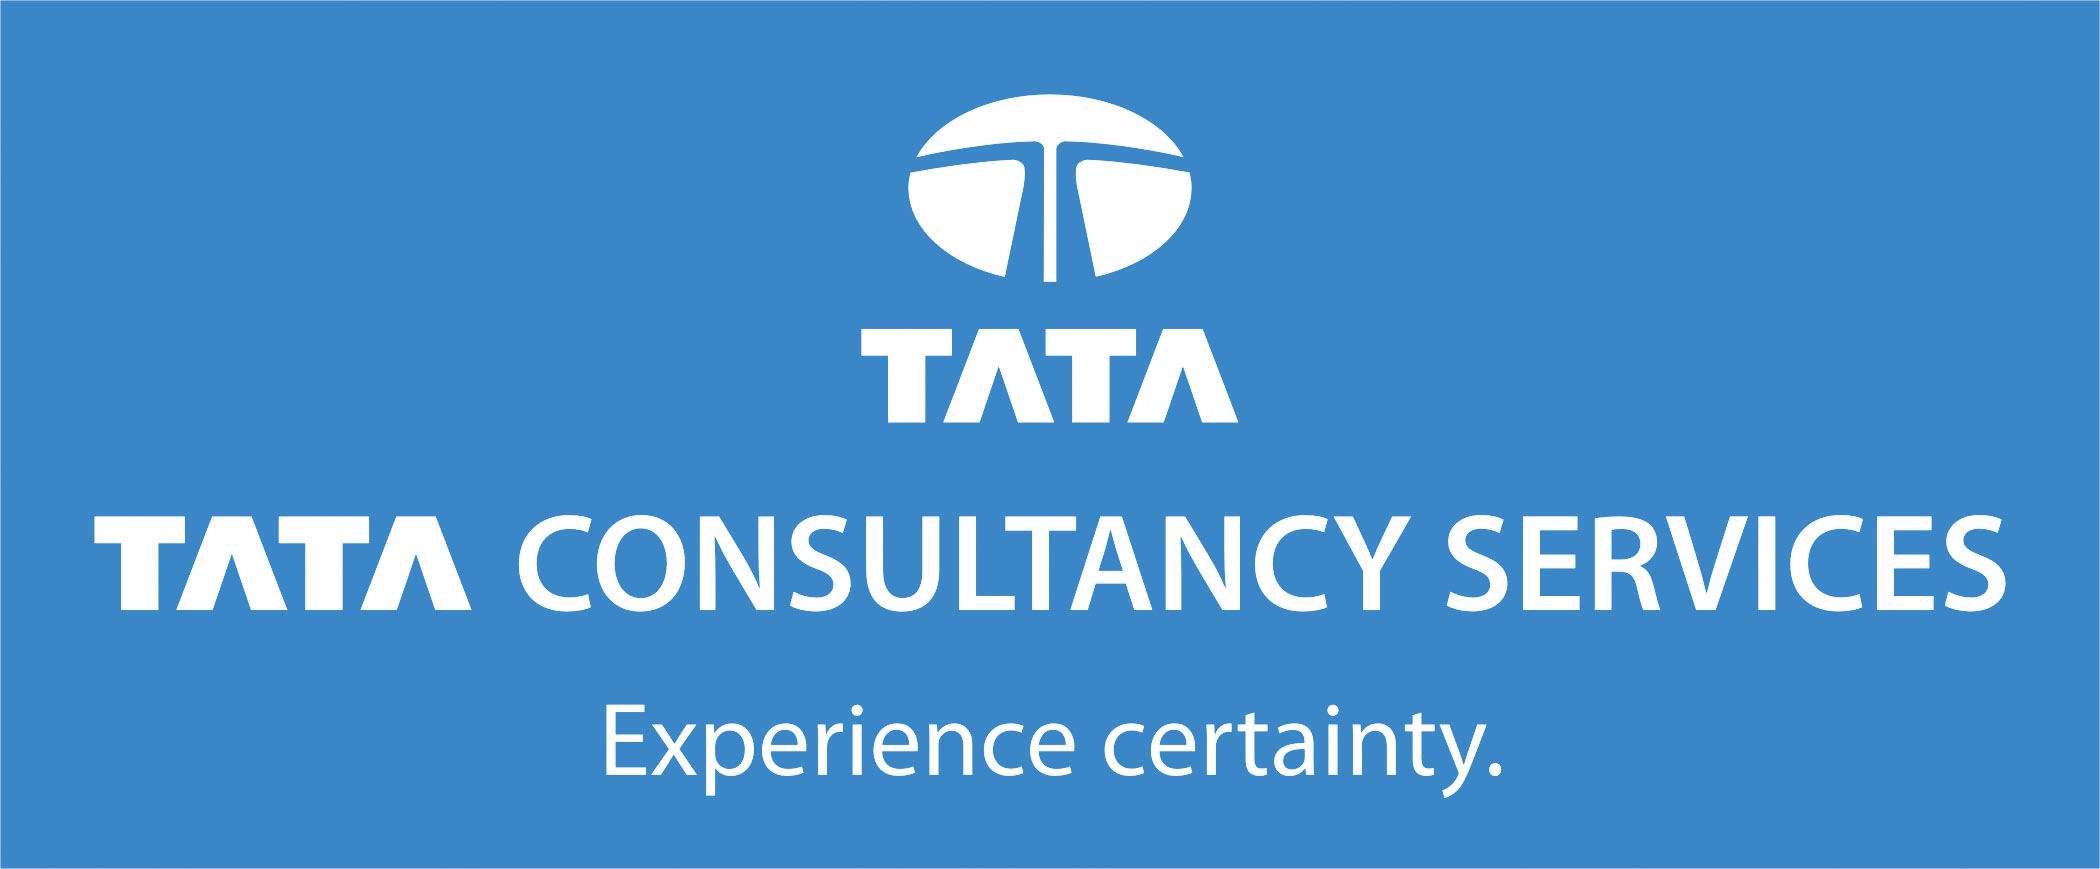 Tata Consultancy Services Ranks Among The Top 3 Employers